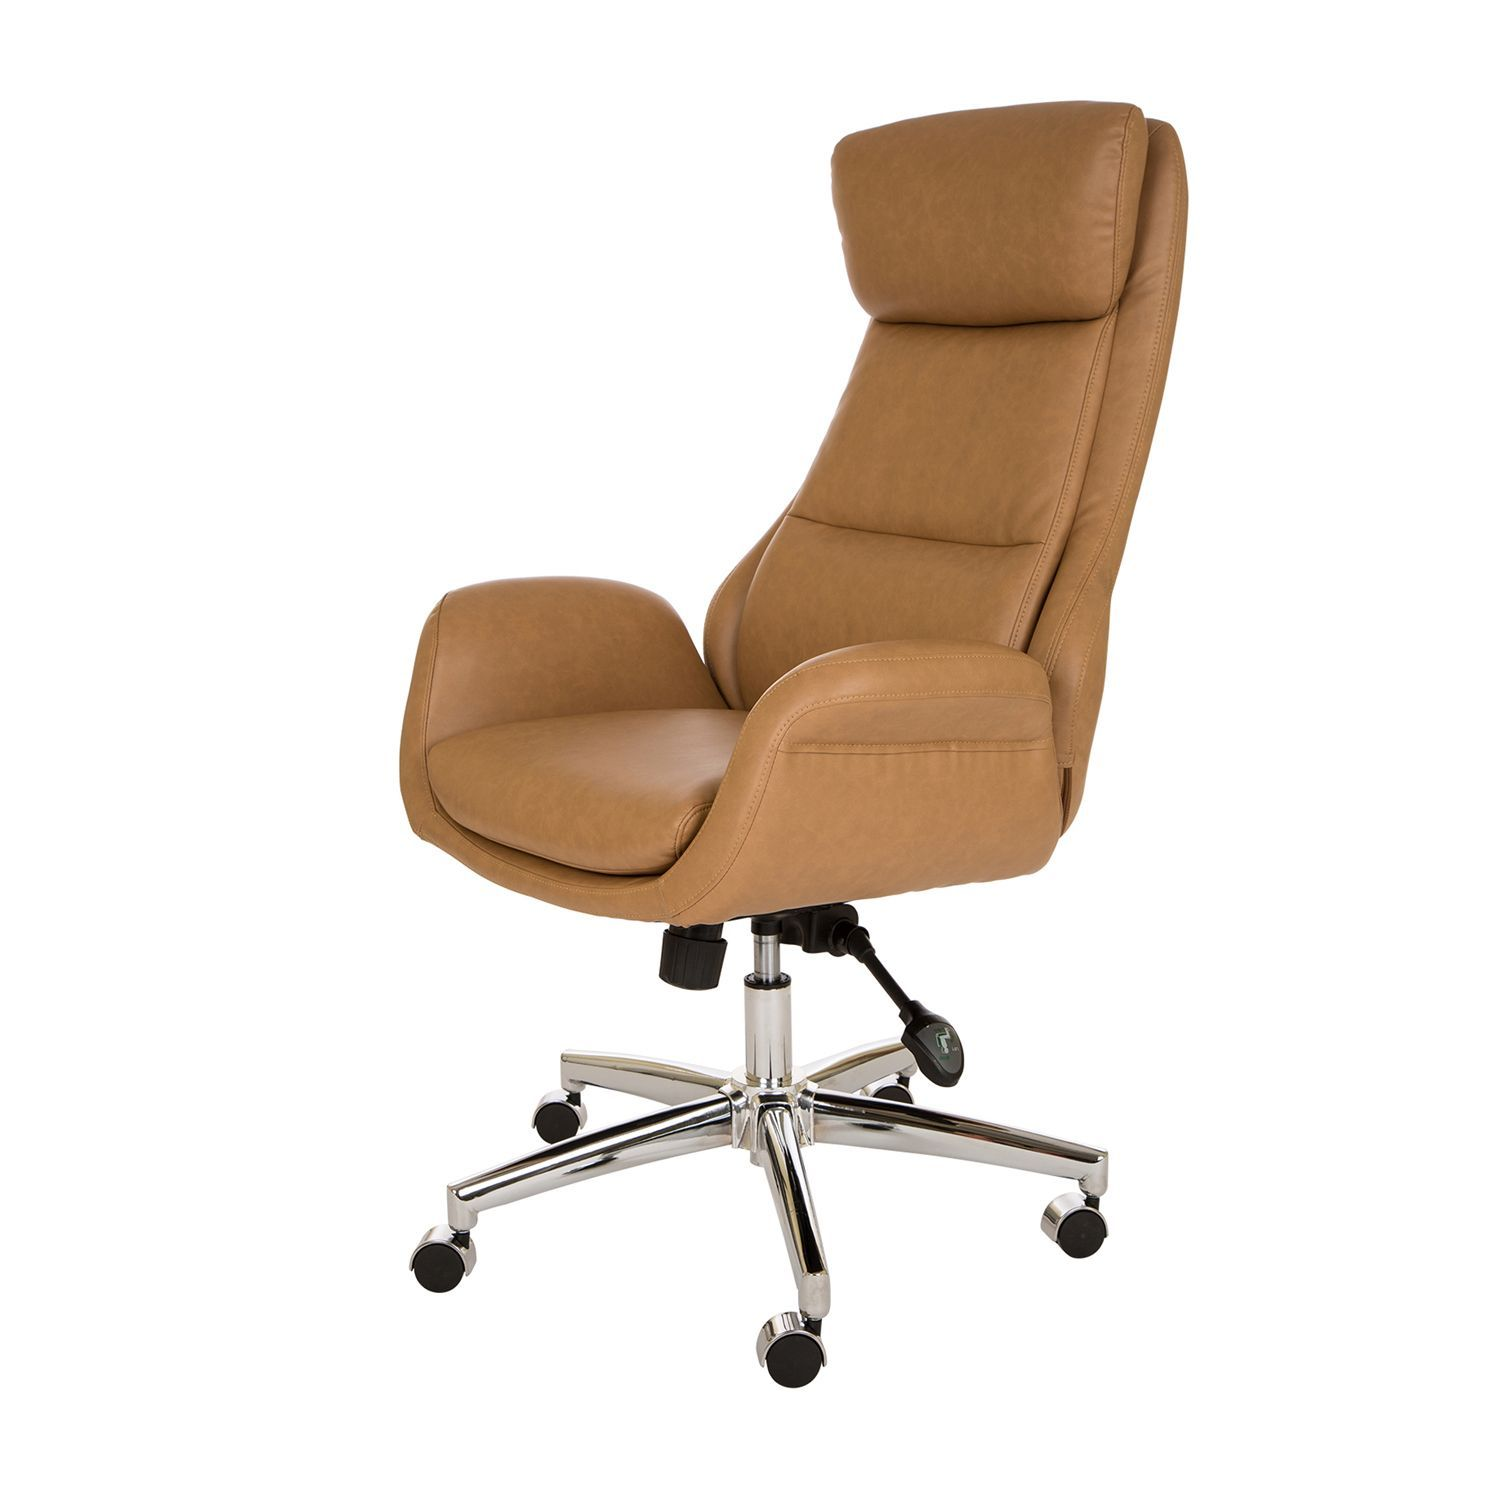 Null Modern Office Chair Swivel Office Chair Adjustable Office